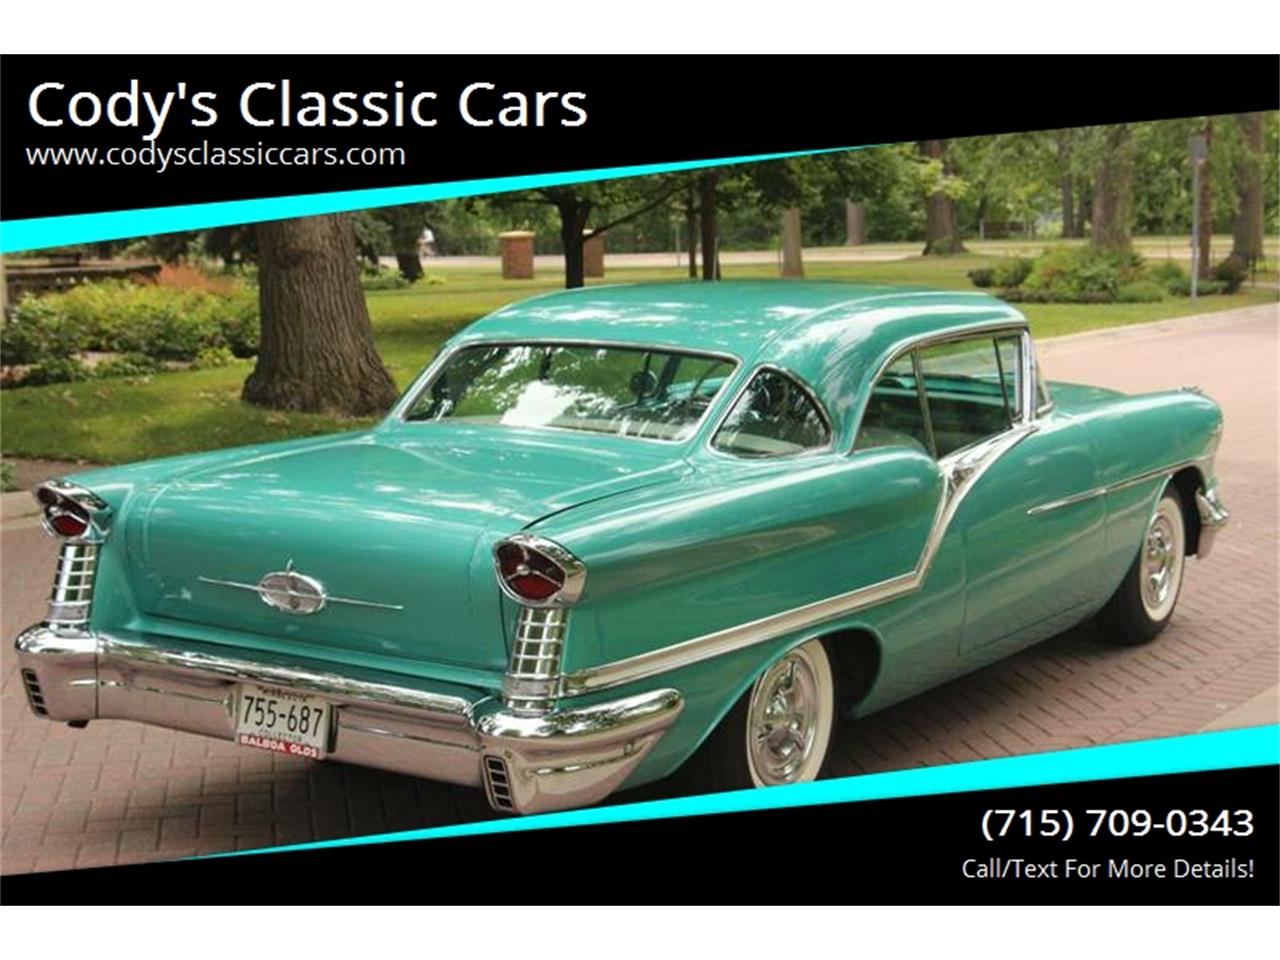 Classic Oldsmobile For Sale On Pg 2 Sort Asking 1941 Club Coupe 1957 Super 88